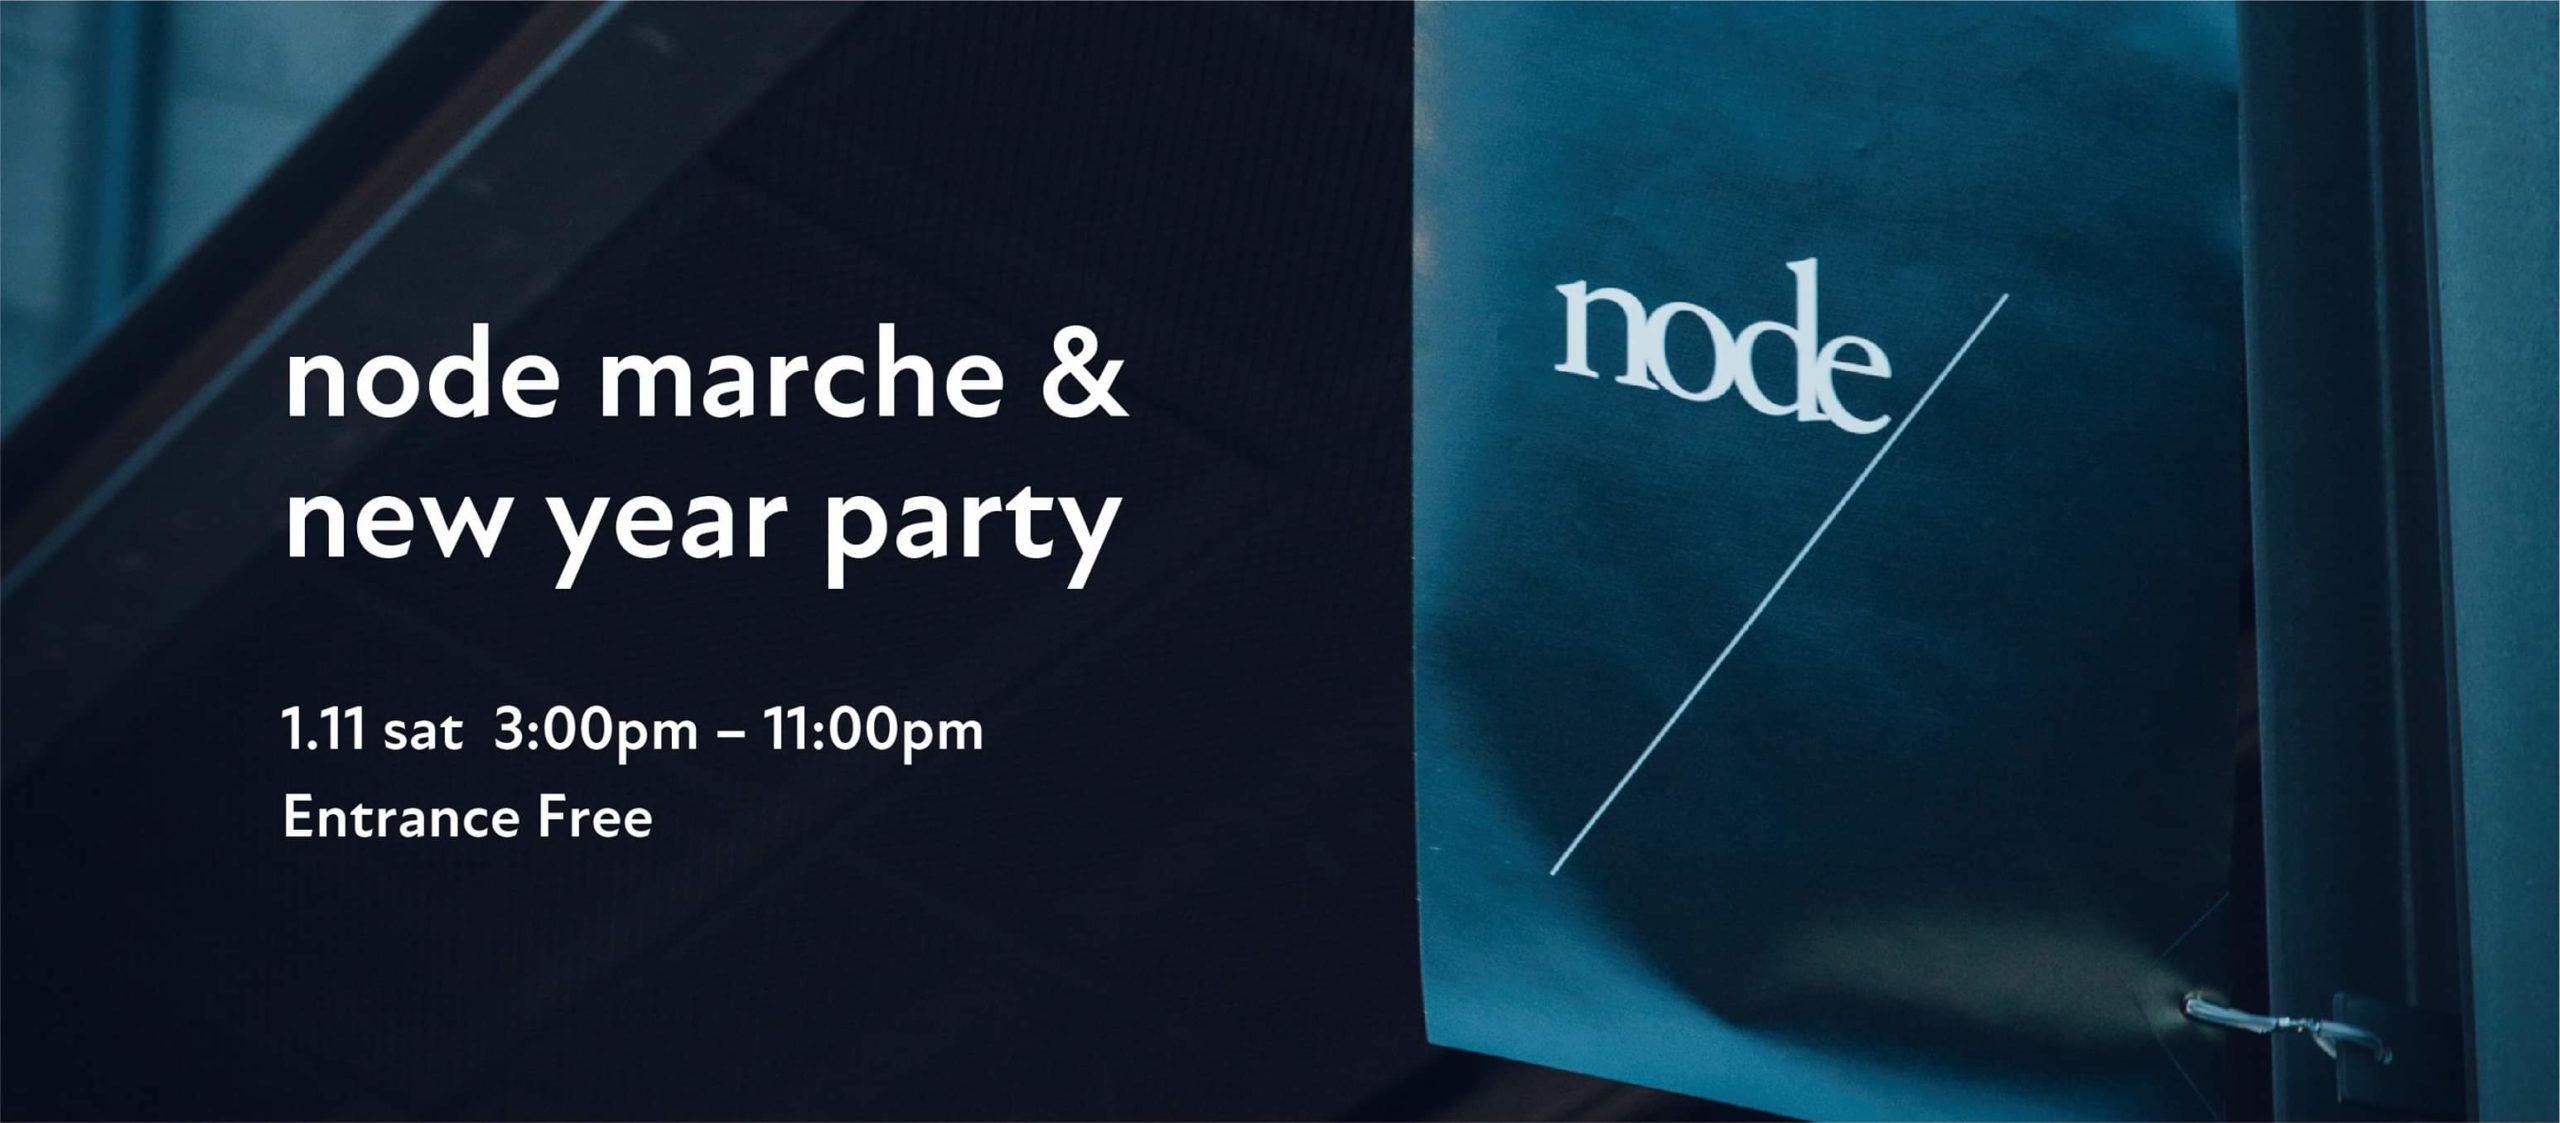 node marché & new year party